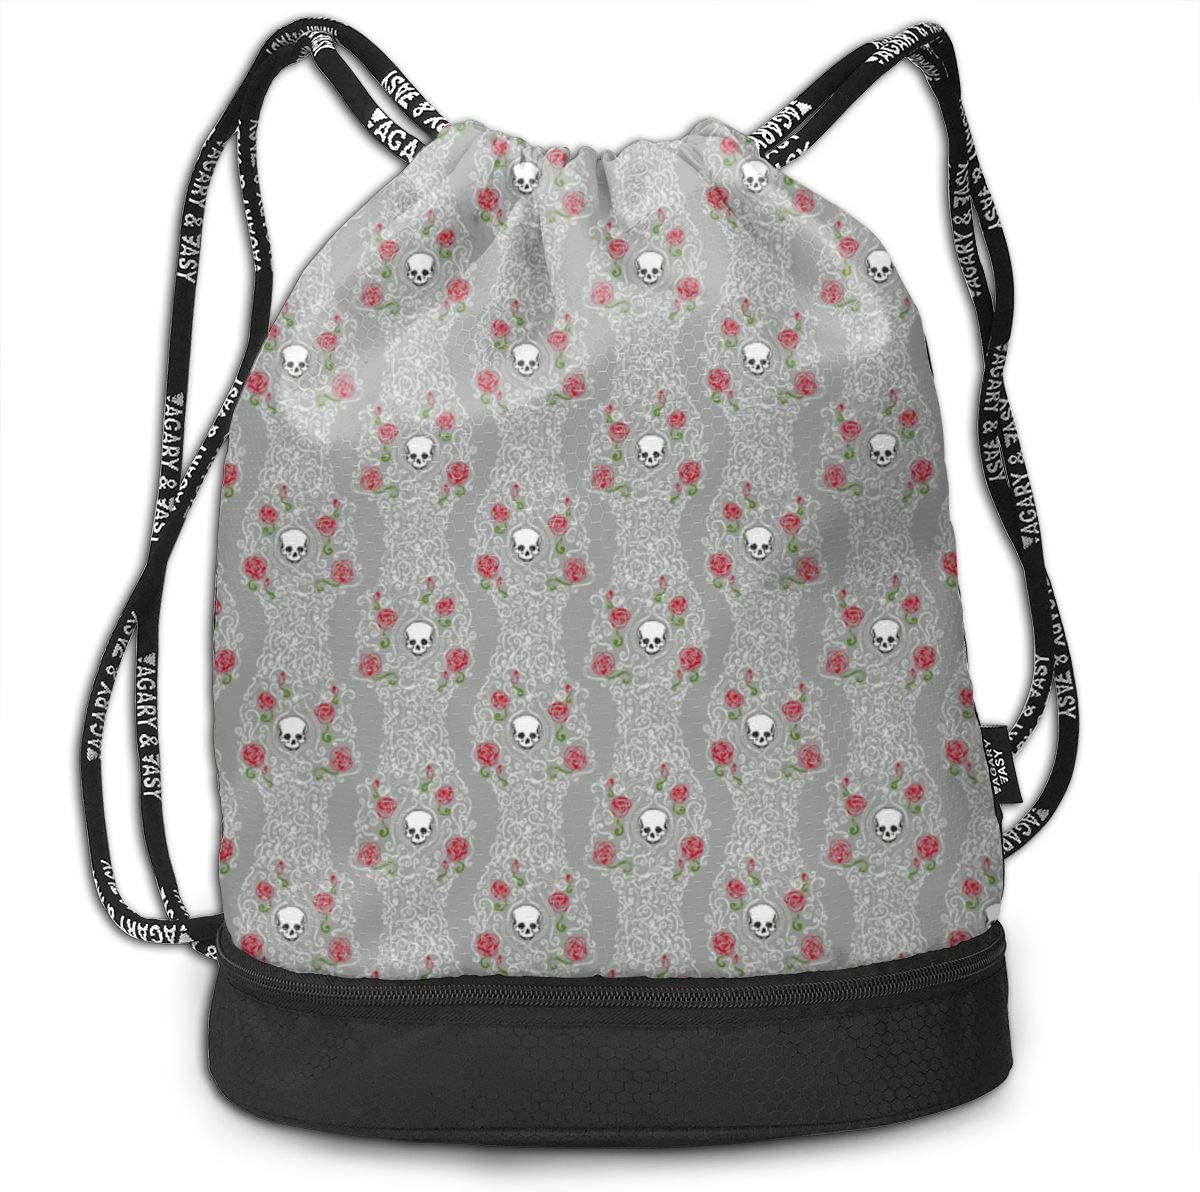 Where Wild Roses Grow Grey Drawstring Backpack Sports Athletic Gym Cinch Sack String Storage Bags for Hiking Travel Beach